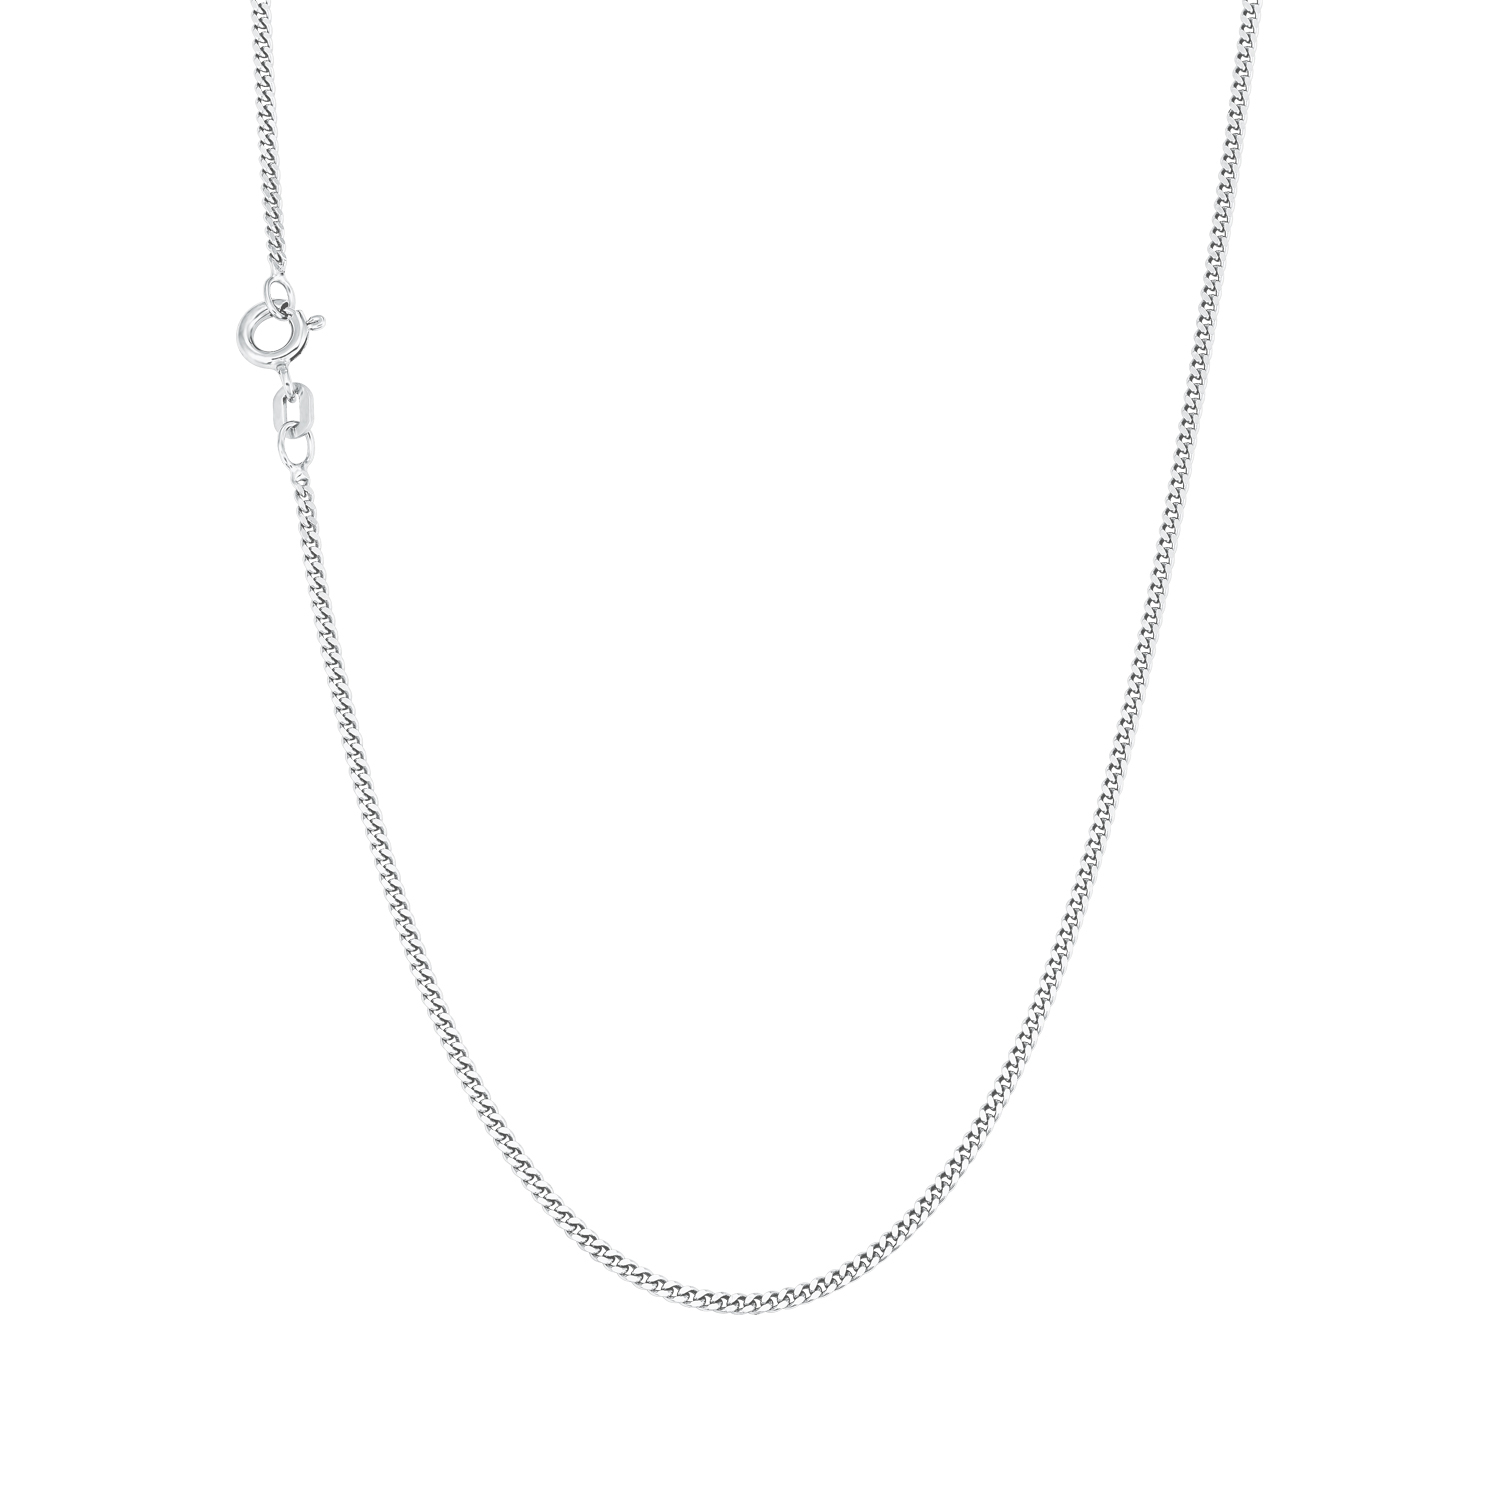 Collier Unisex, Sterling Silber 925